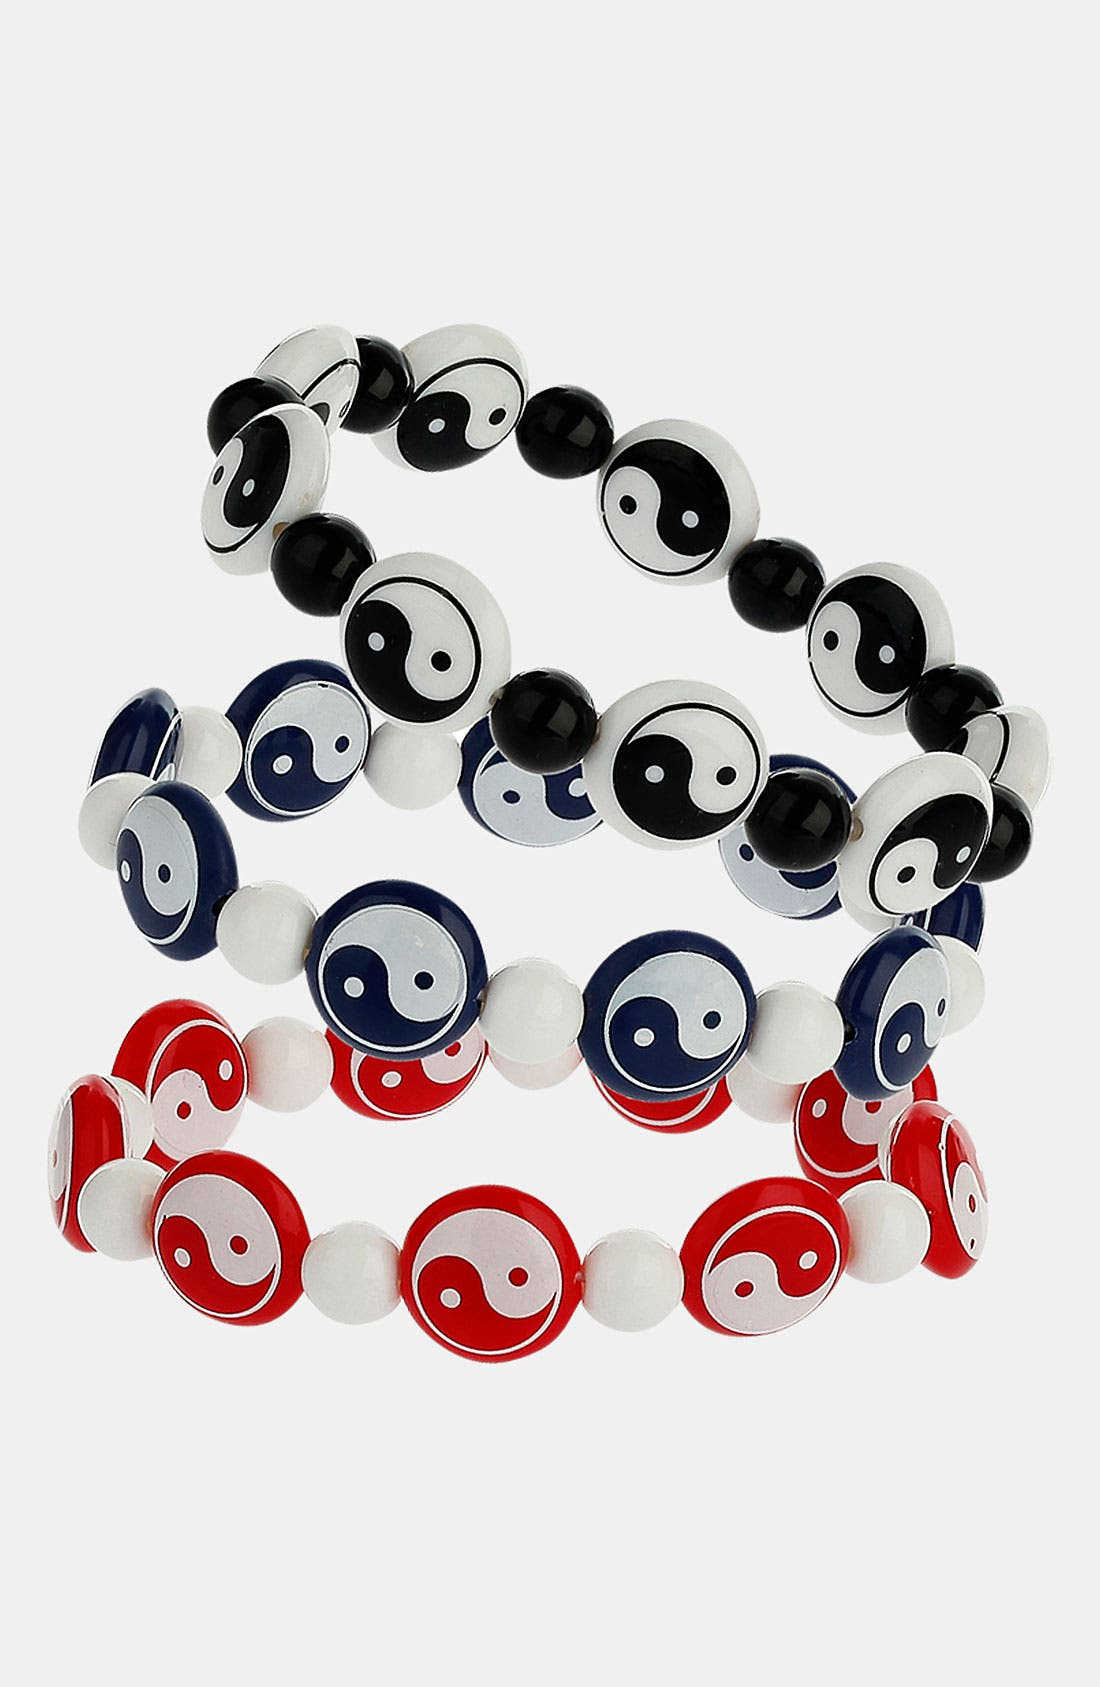 Alternate Image 1 Selected - Topman 'Yin & Yang' Beaded Stretch Bracelets (Set of 3)